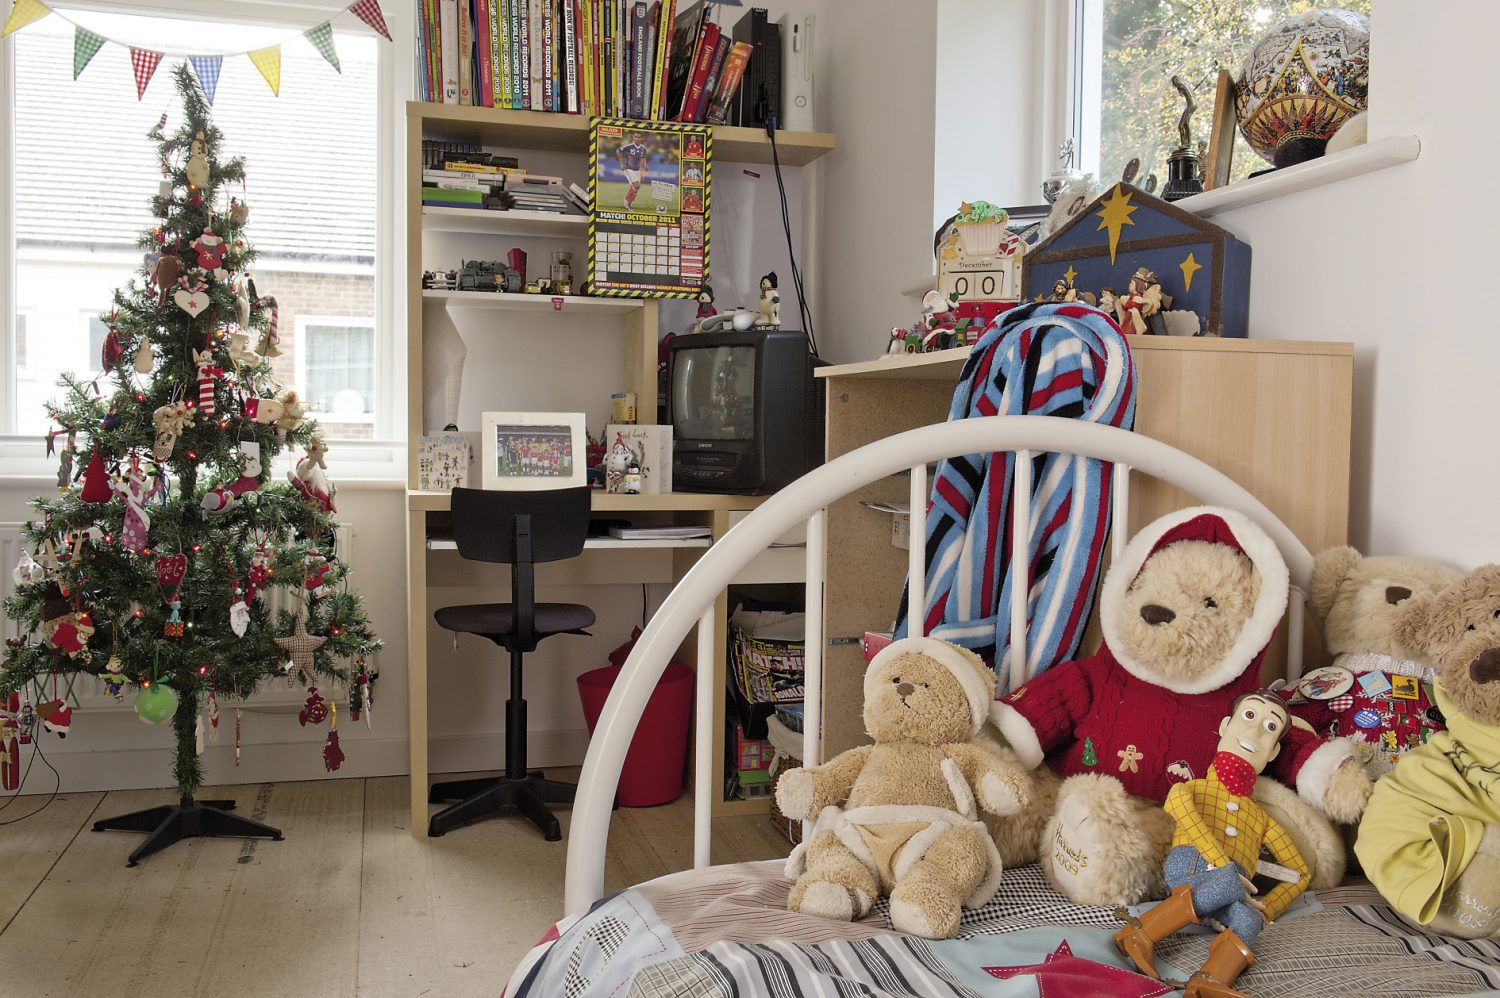 Kitty's children's room is just as colourful as you might expect, and of course, has its own Christmas tree